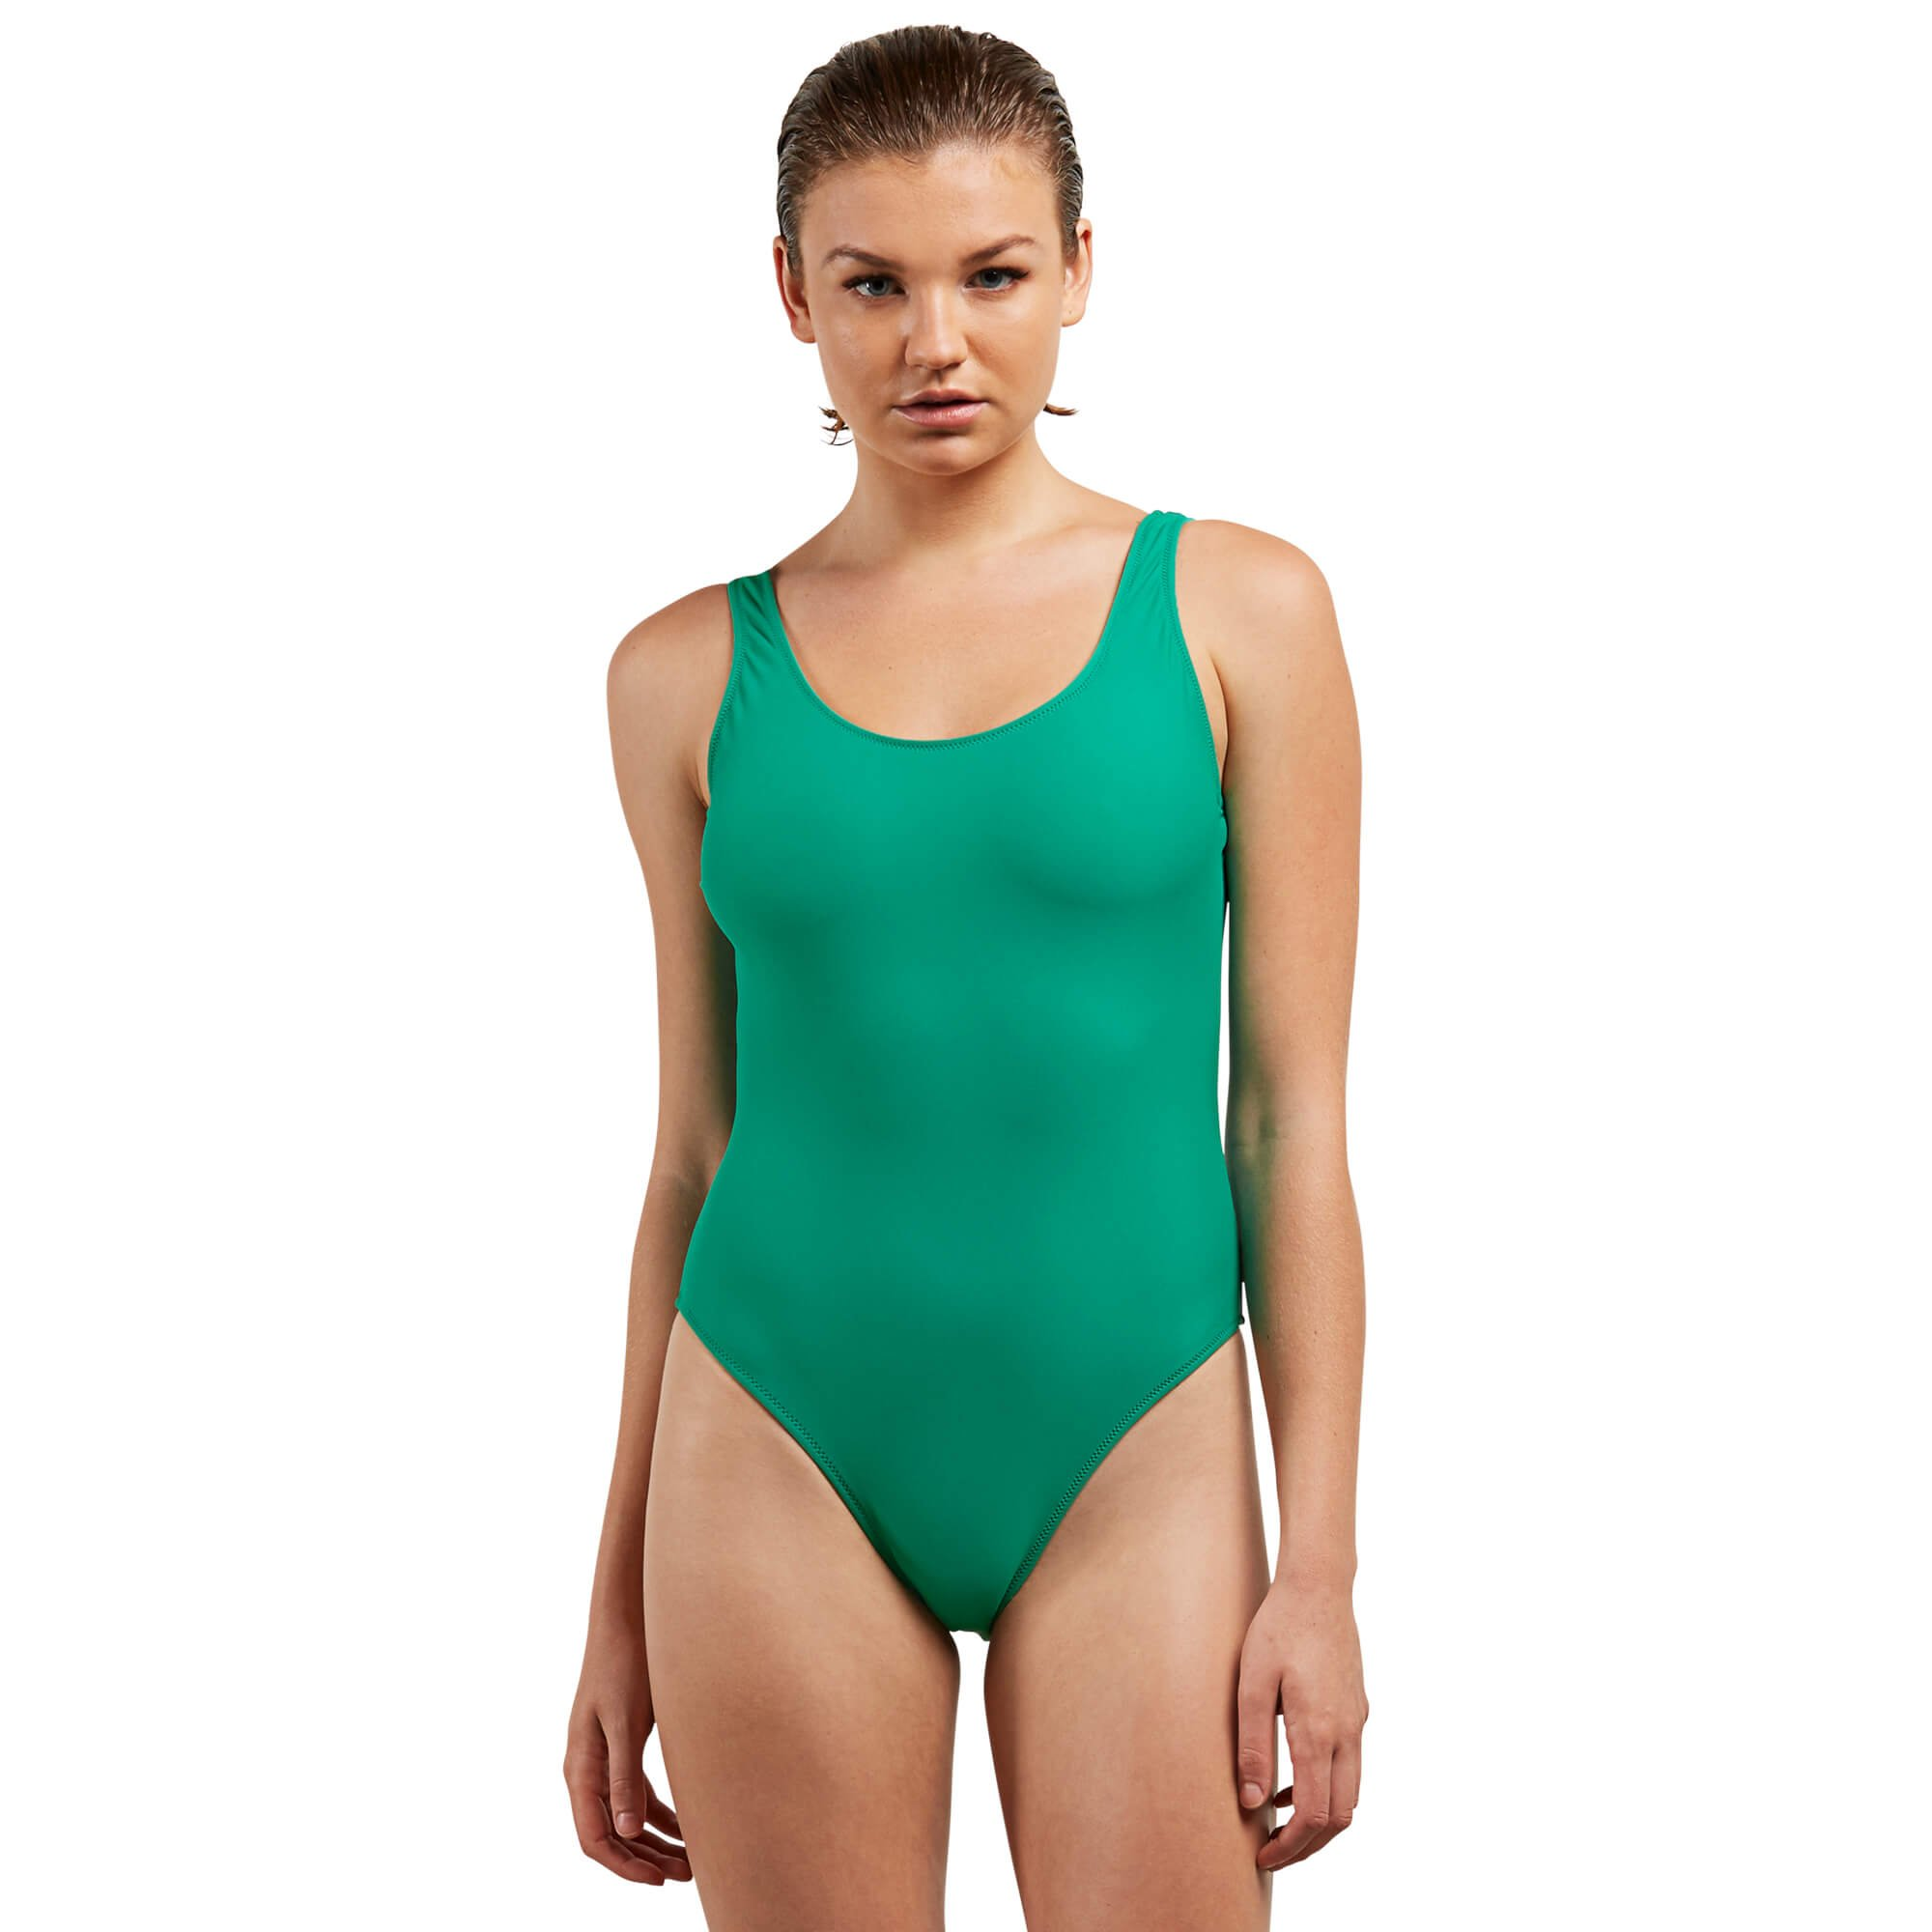 e55415b9c1 Galleon - Volcom Women's Junior's Simply Solid One Piece Swimsuit, Green  Spray, Extra Extra Large